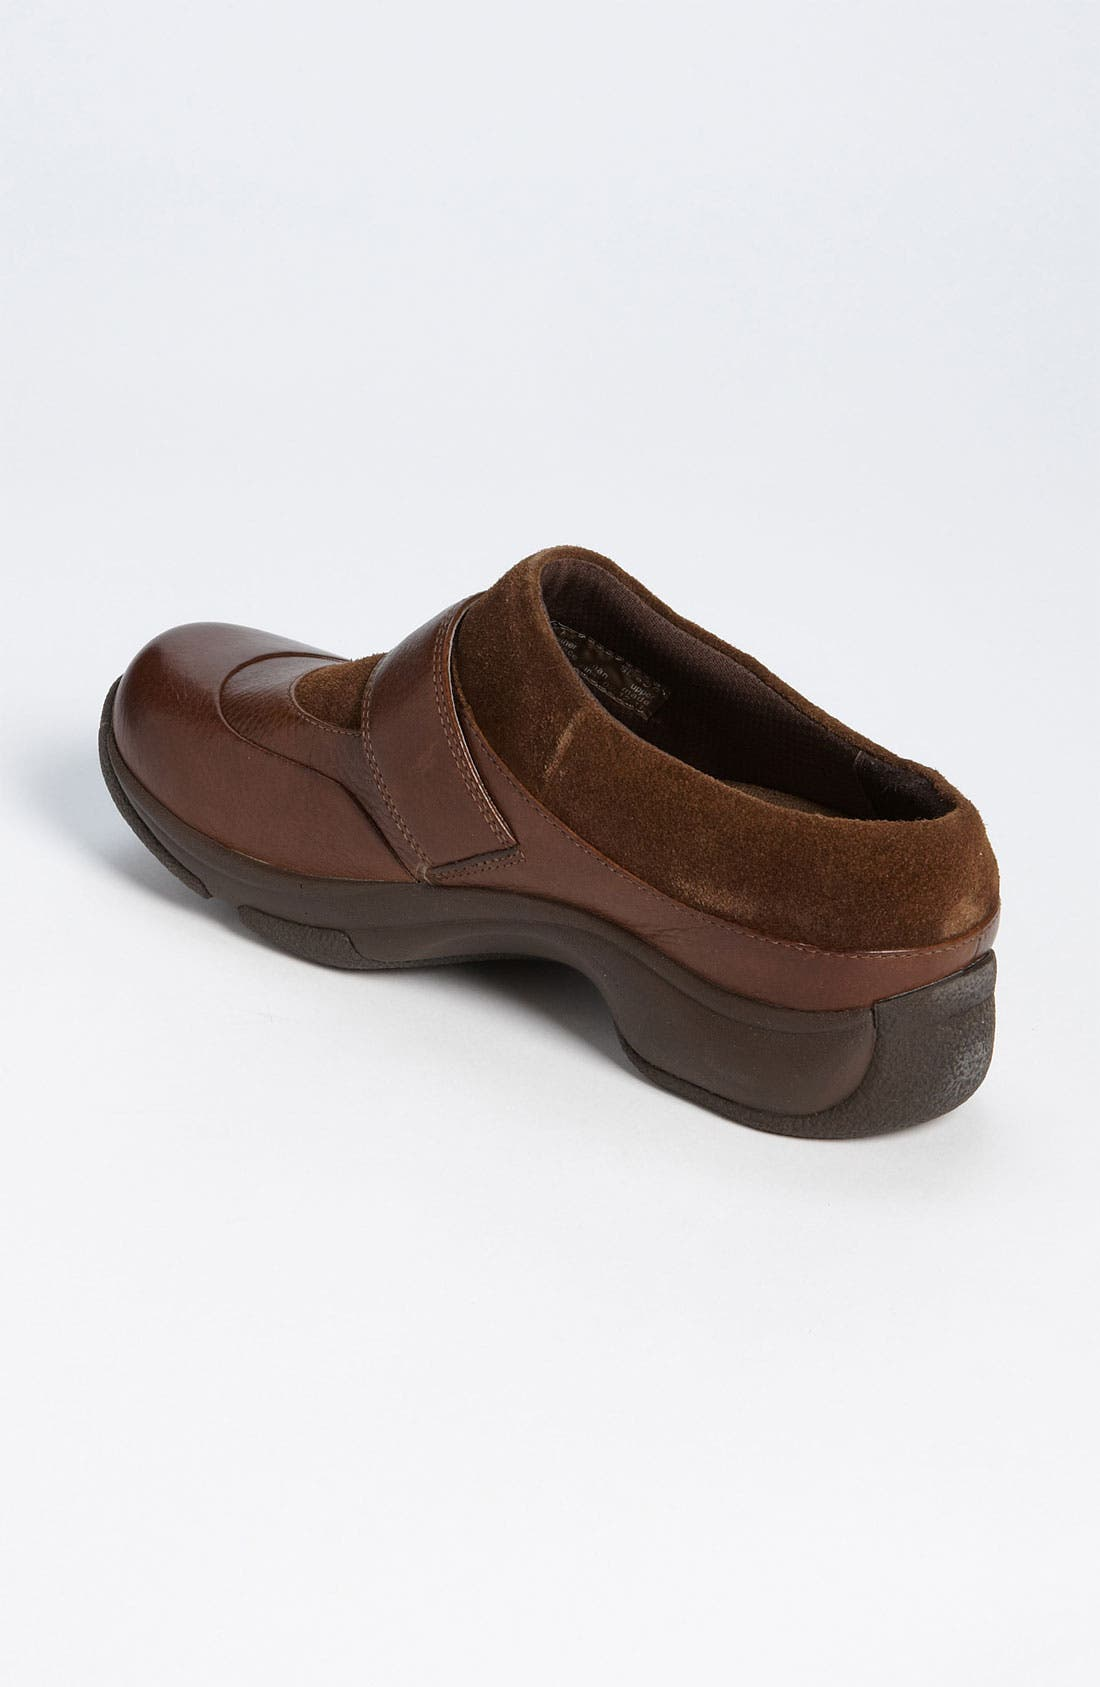 Alternate Image 2  - Dansko 'Kaya' Clog